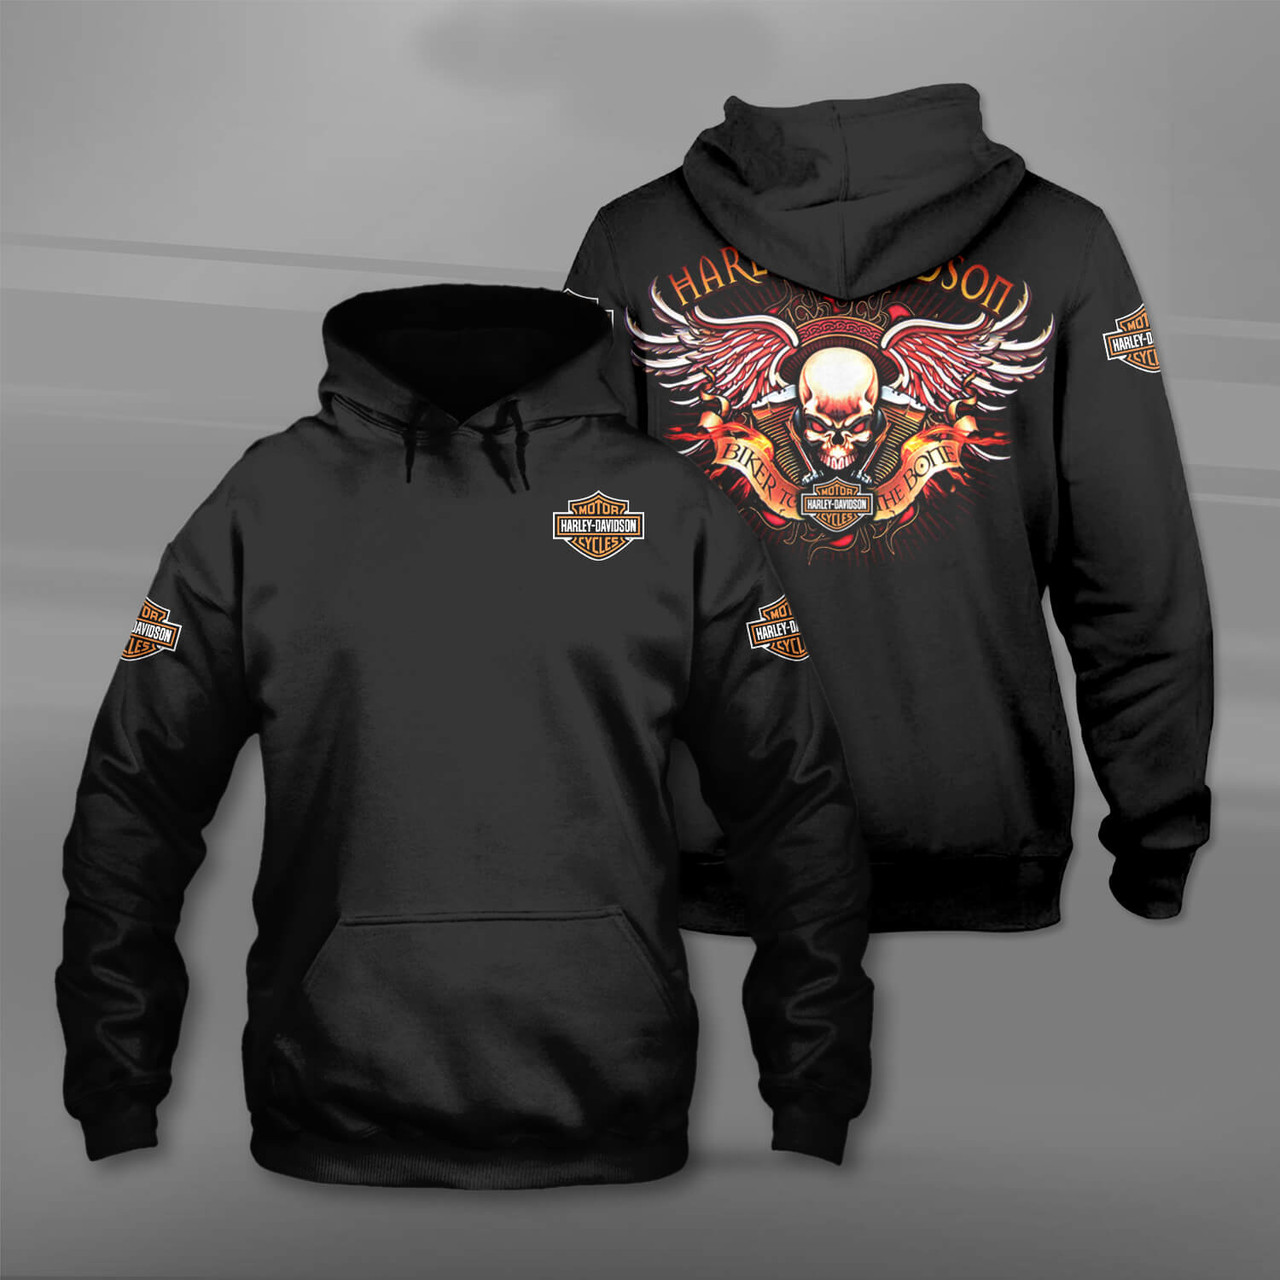 **(OFFICIAL-HARLEY-DAVIDSON-MOTORCYCLE-PULLOVER-HOODIES/CUSTOM-3D-GRAPHIC-PRINTED-ALL-OVER-DESIGN & BIKER-TO-THE-BONE/CLASSIC-OFFICIAL-CUSTOM-HARLEY-LOGOS & OFFICIAL-HARLEY-BLACK & ORANGE-COLORS/WARM-PREMIUM-RIDING-HARLEY-BIKERS-PULLOVER-HOODIES)**